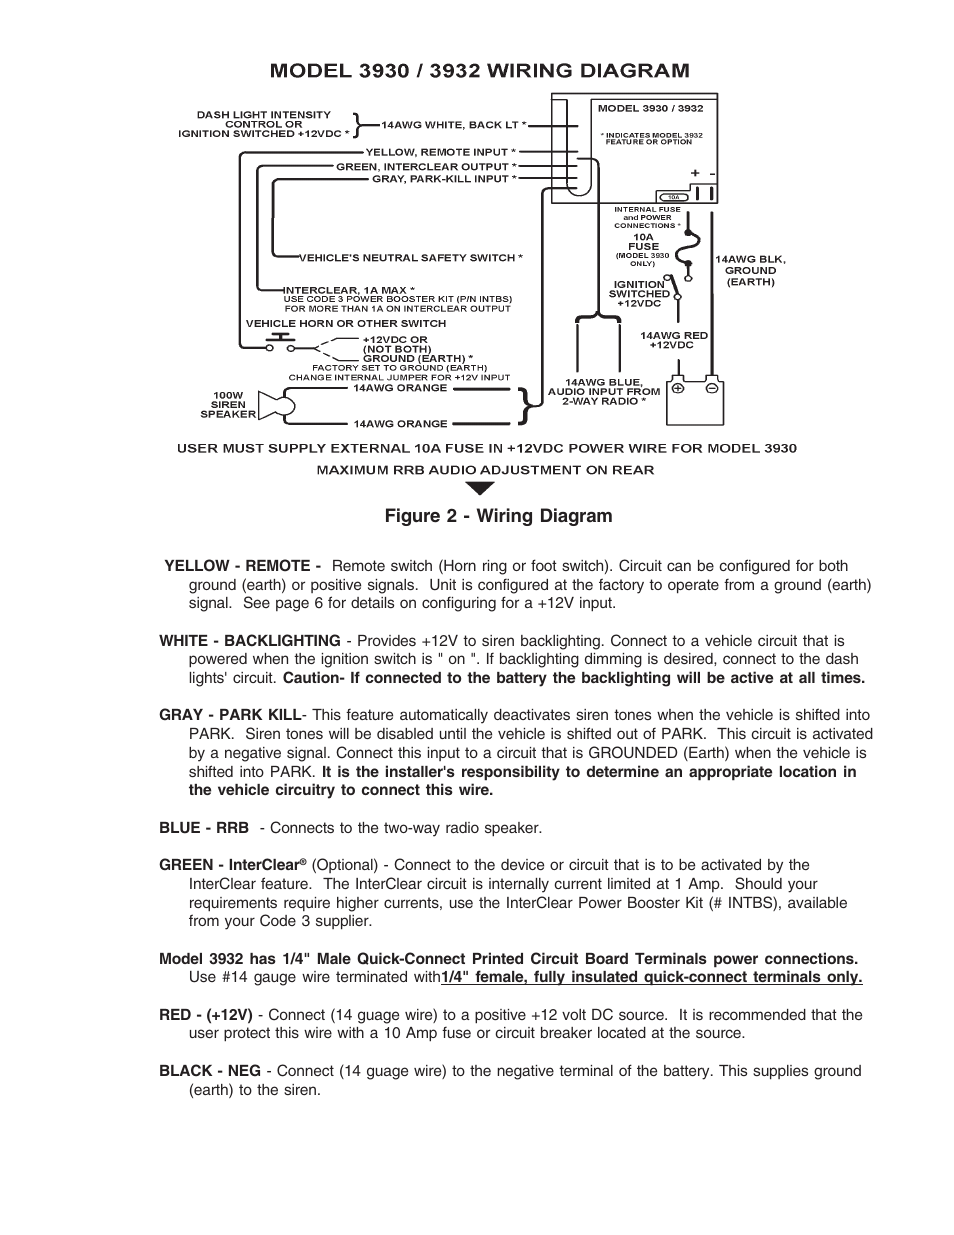 Code 3 Scorpion Siren User Manual | Page 5 / 16 | Also for: Compact ...